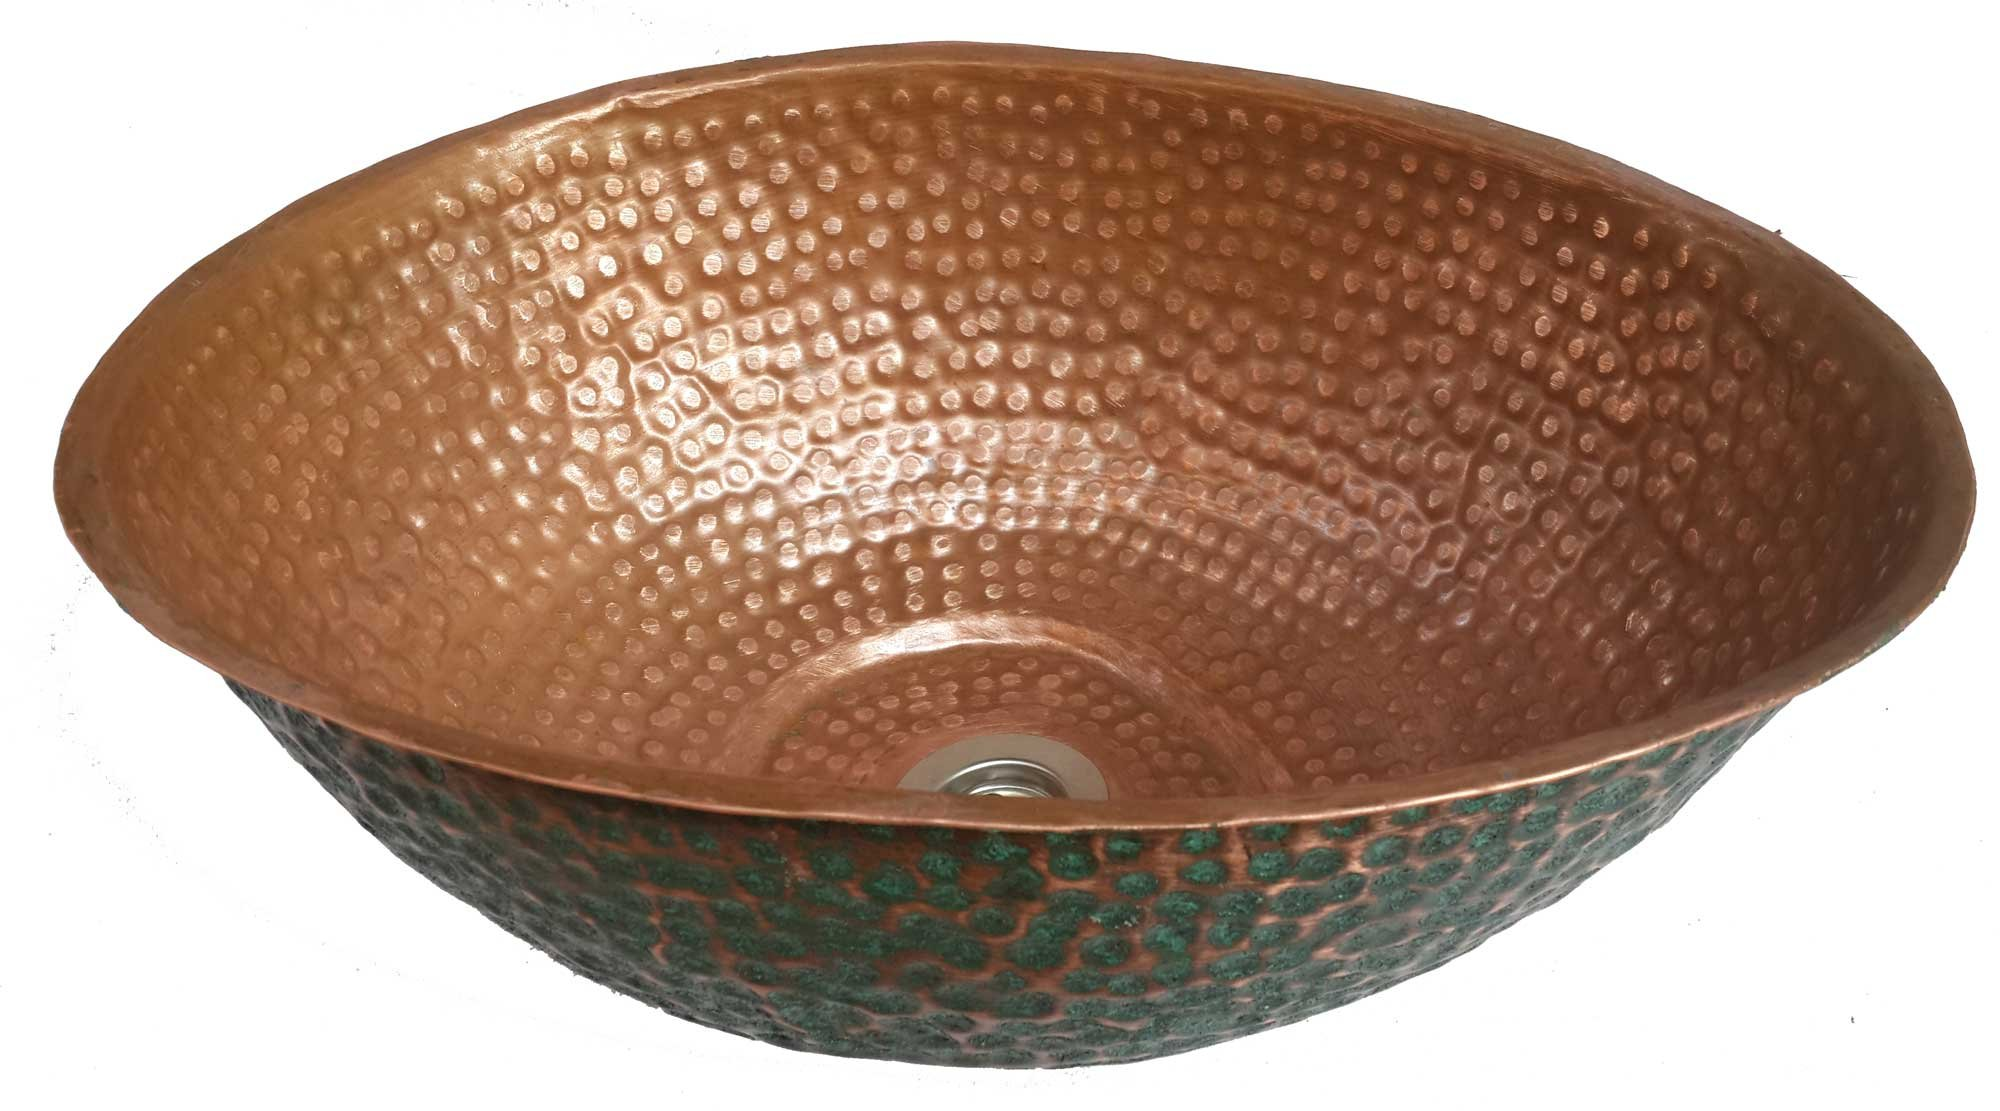 Egypt gift shops Egg Design Oxidized Vessel Sink Counter Top Wash Room Basin Bath Modeling by Egypt gift shops